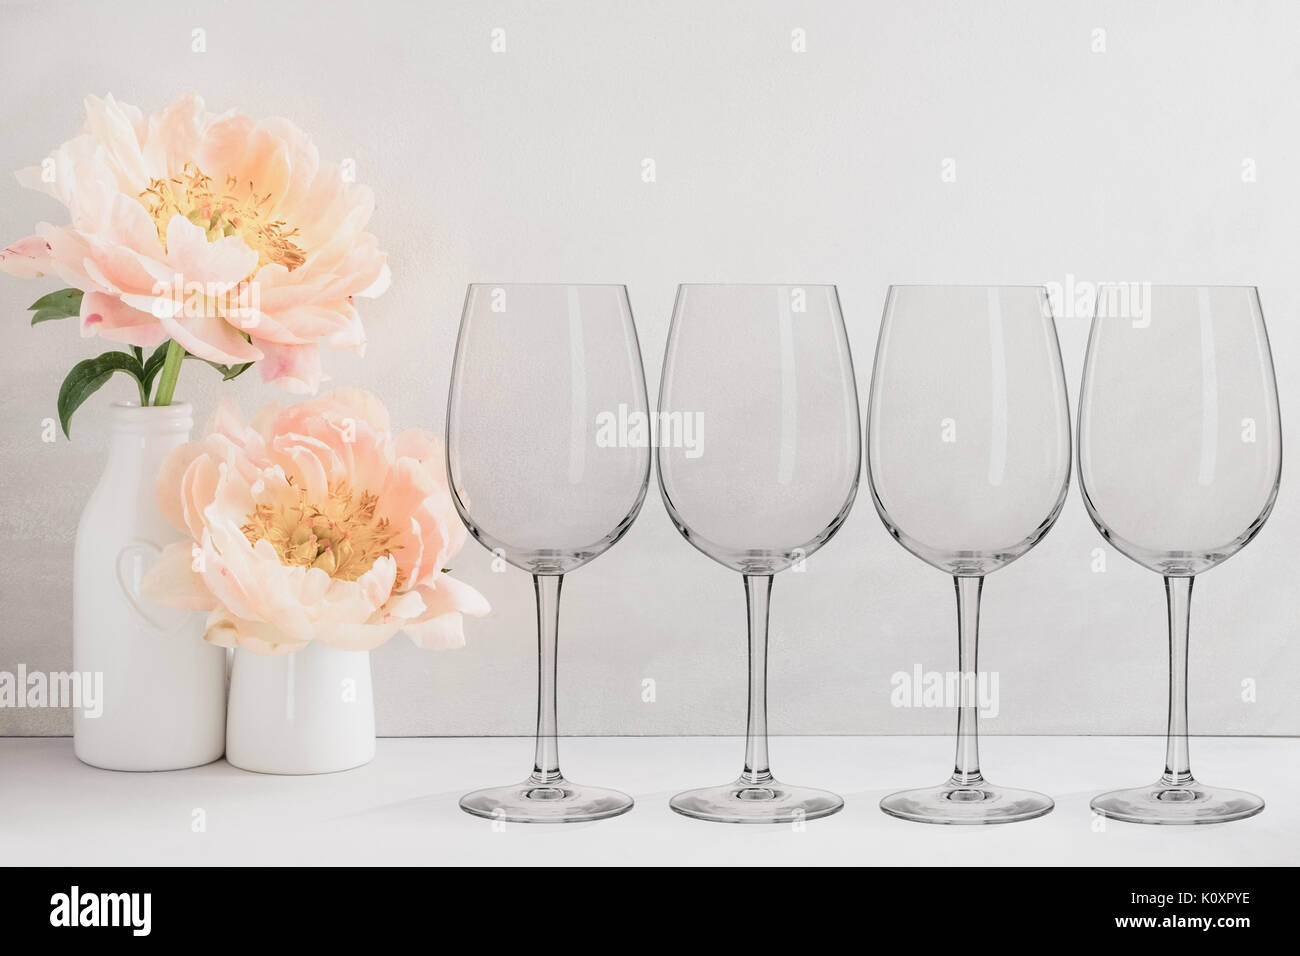 Floral mock-up of 4 wine glasses next to a vase of flowers, perfect for businesses who sell decals, vinyl stickers, just overlay your design - Stock Image